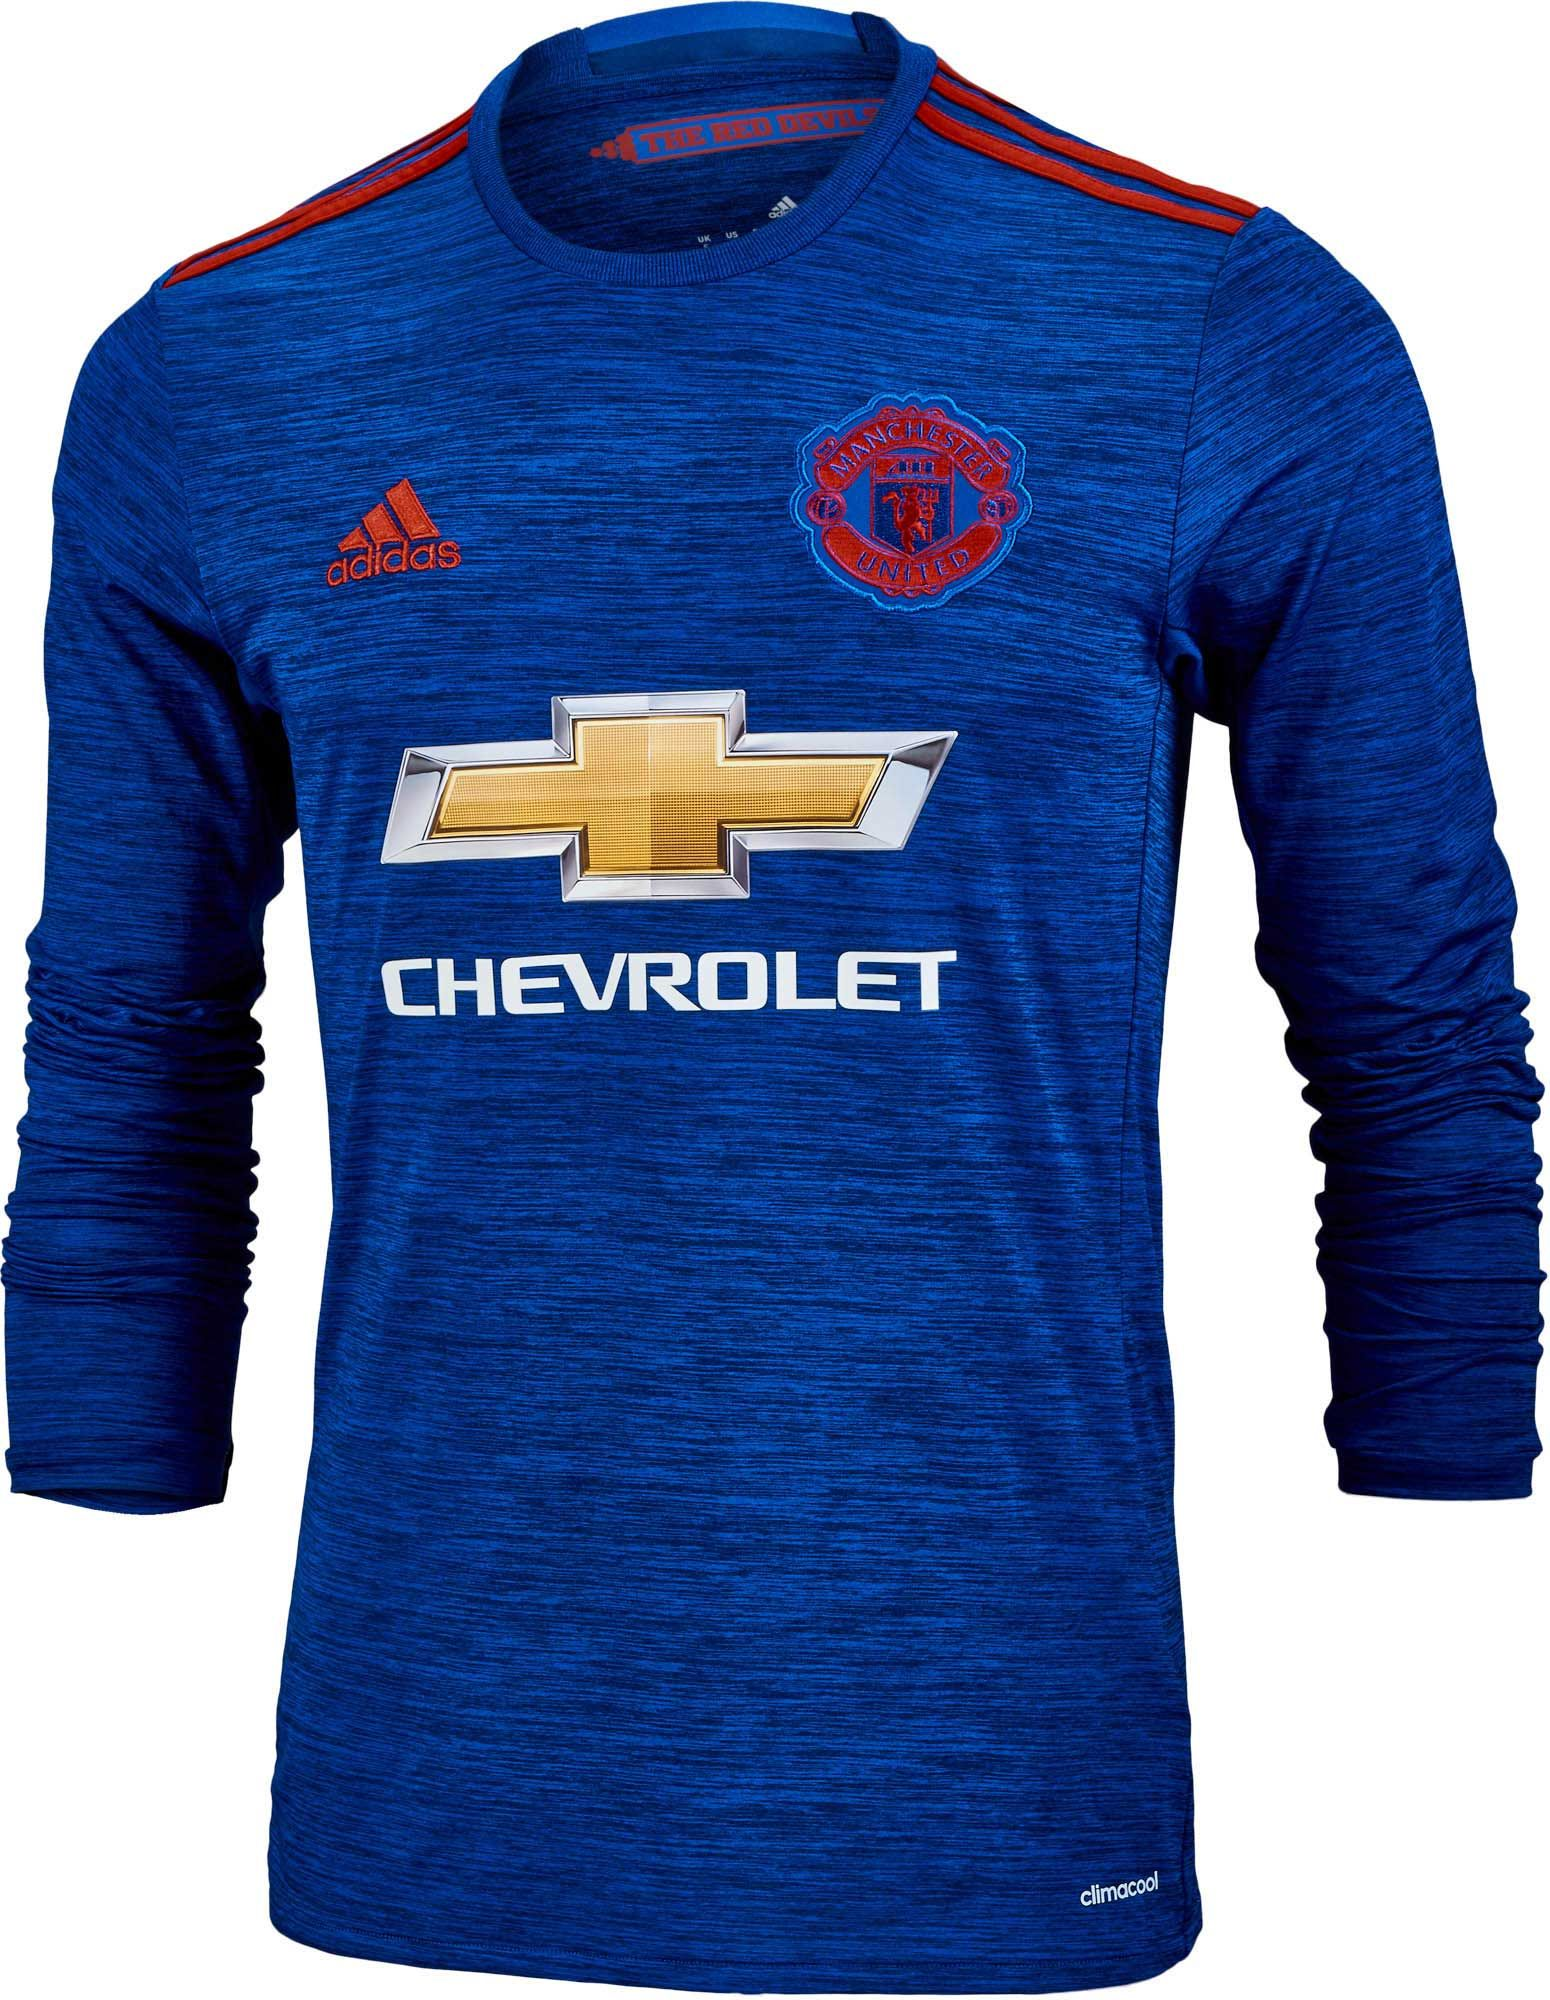 the latest 811ac d72ee adidas Manchester United L/S Away Jersey 2016-17 | Steals ...